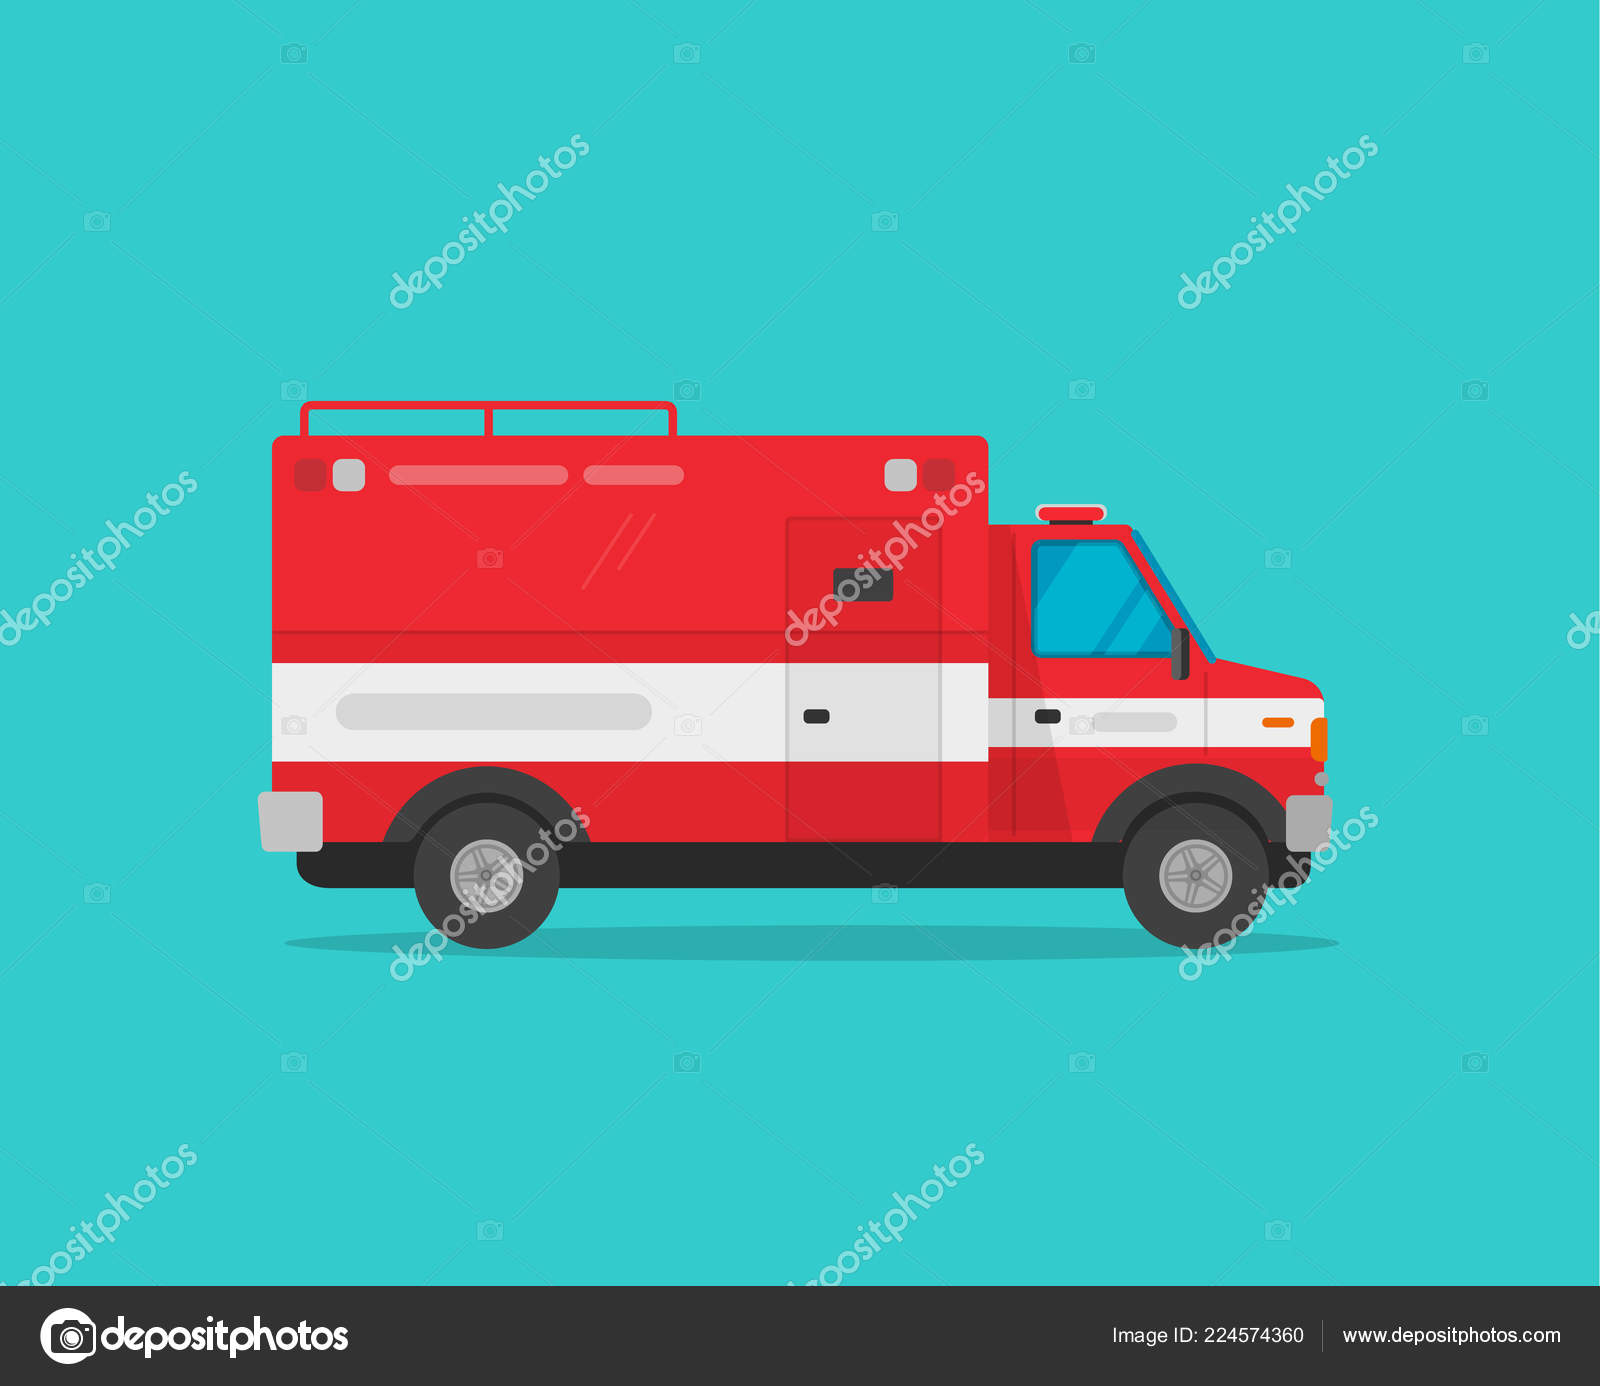 hight resolution of fire truck vector illustration flat cartoon firetruck emergency vehicle isolated on blue color background clipart